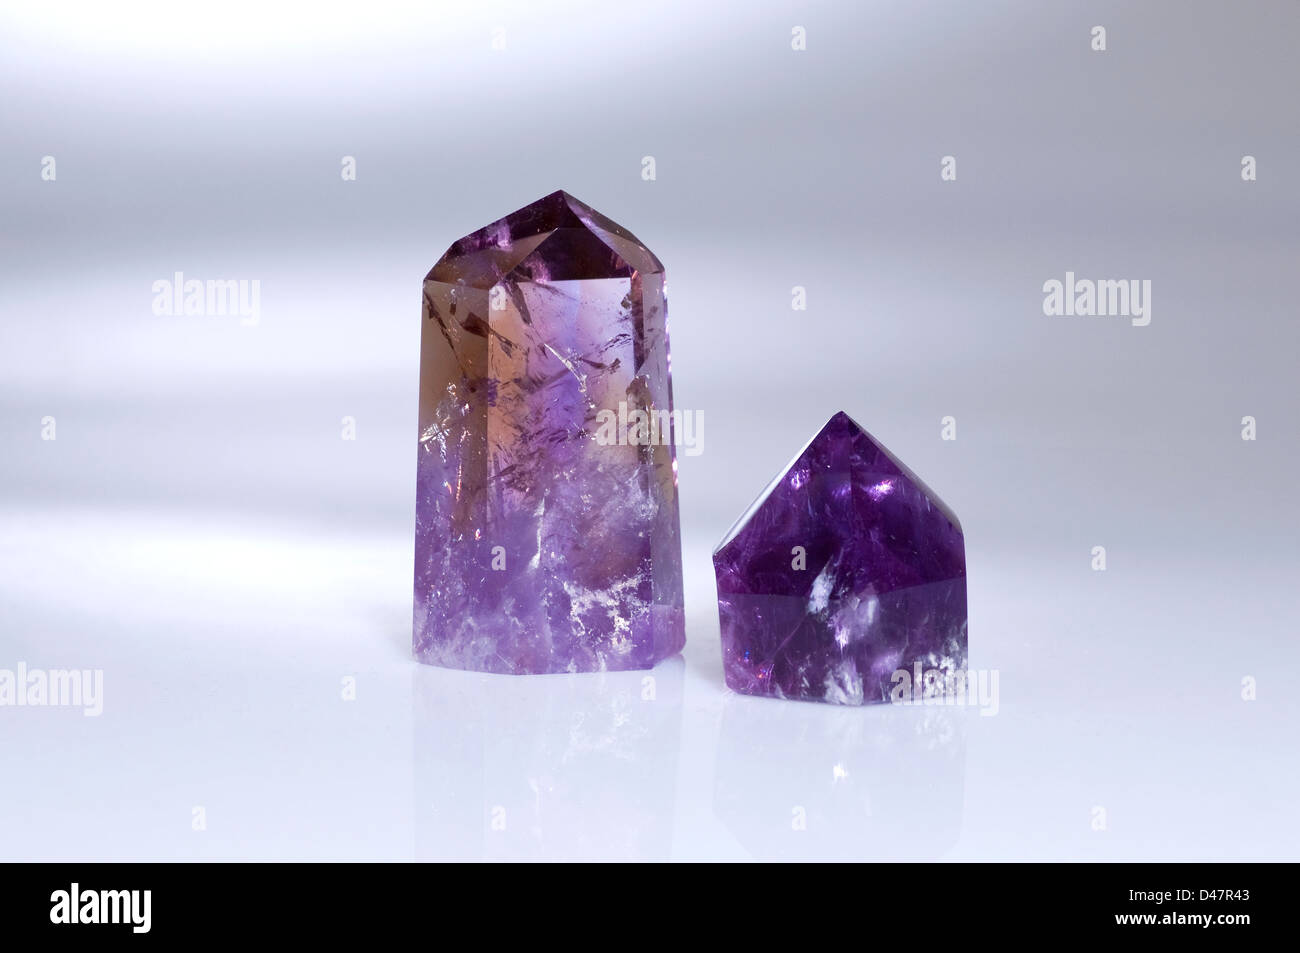 Two Amethyst Menhirs - Stock Image